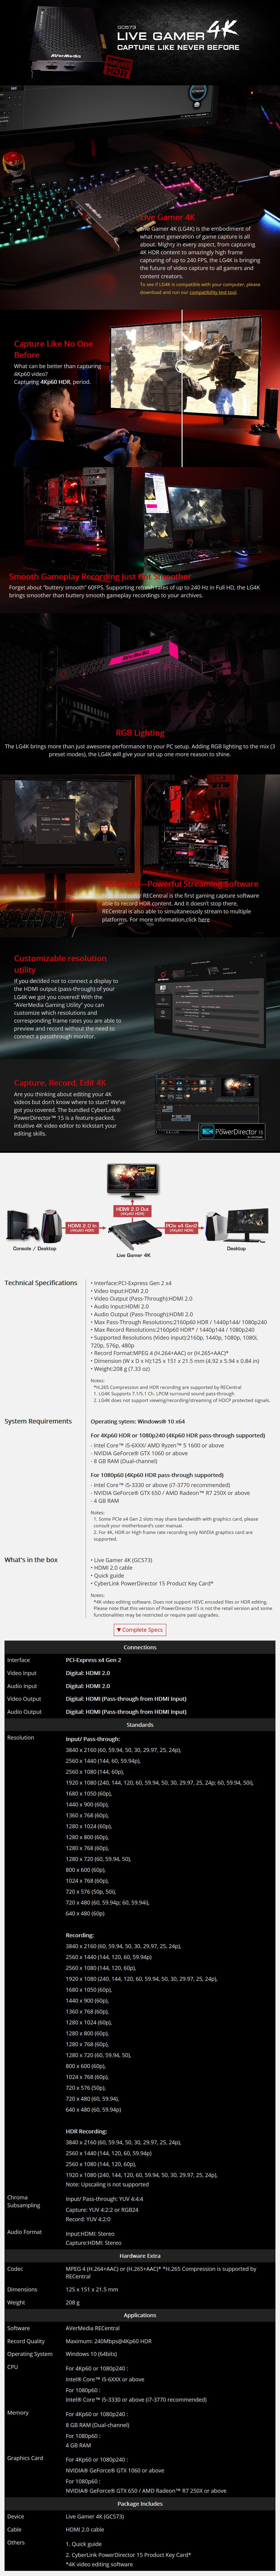 AVerMedia GC573 Live Gamer 4K Capture Device - Desktop Overview